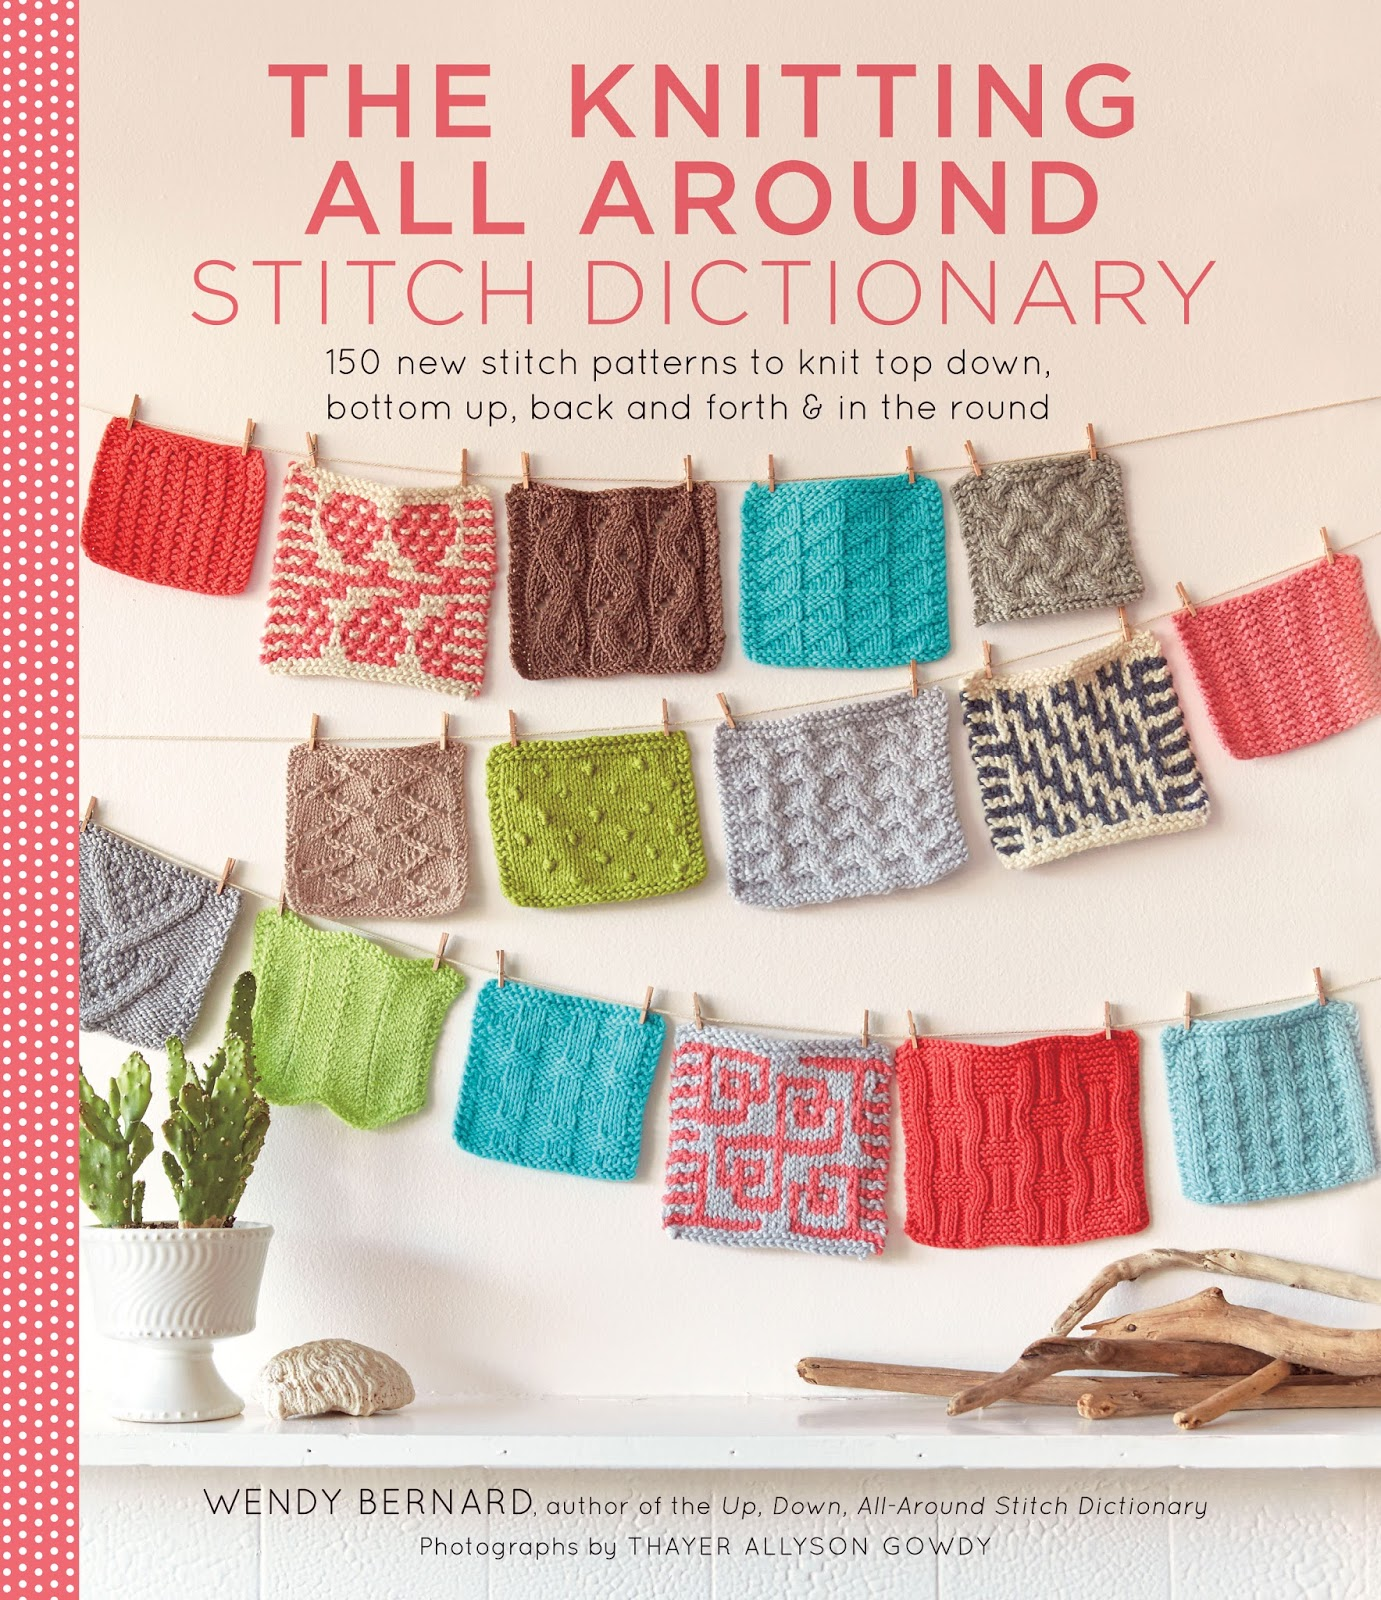 Knitting Cable Stitch Dictionary : The Yarniacs Podcast: The Knitting All Around Stitch Dictionary